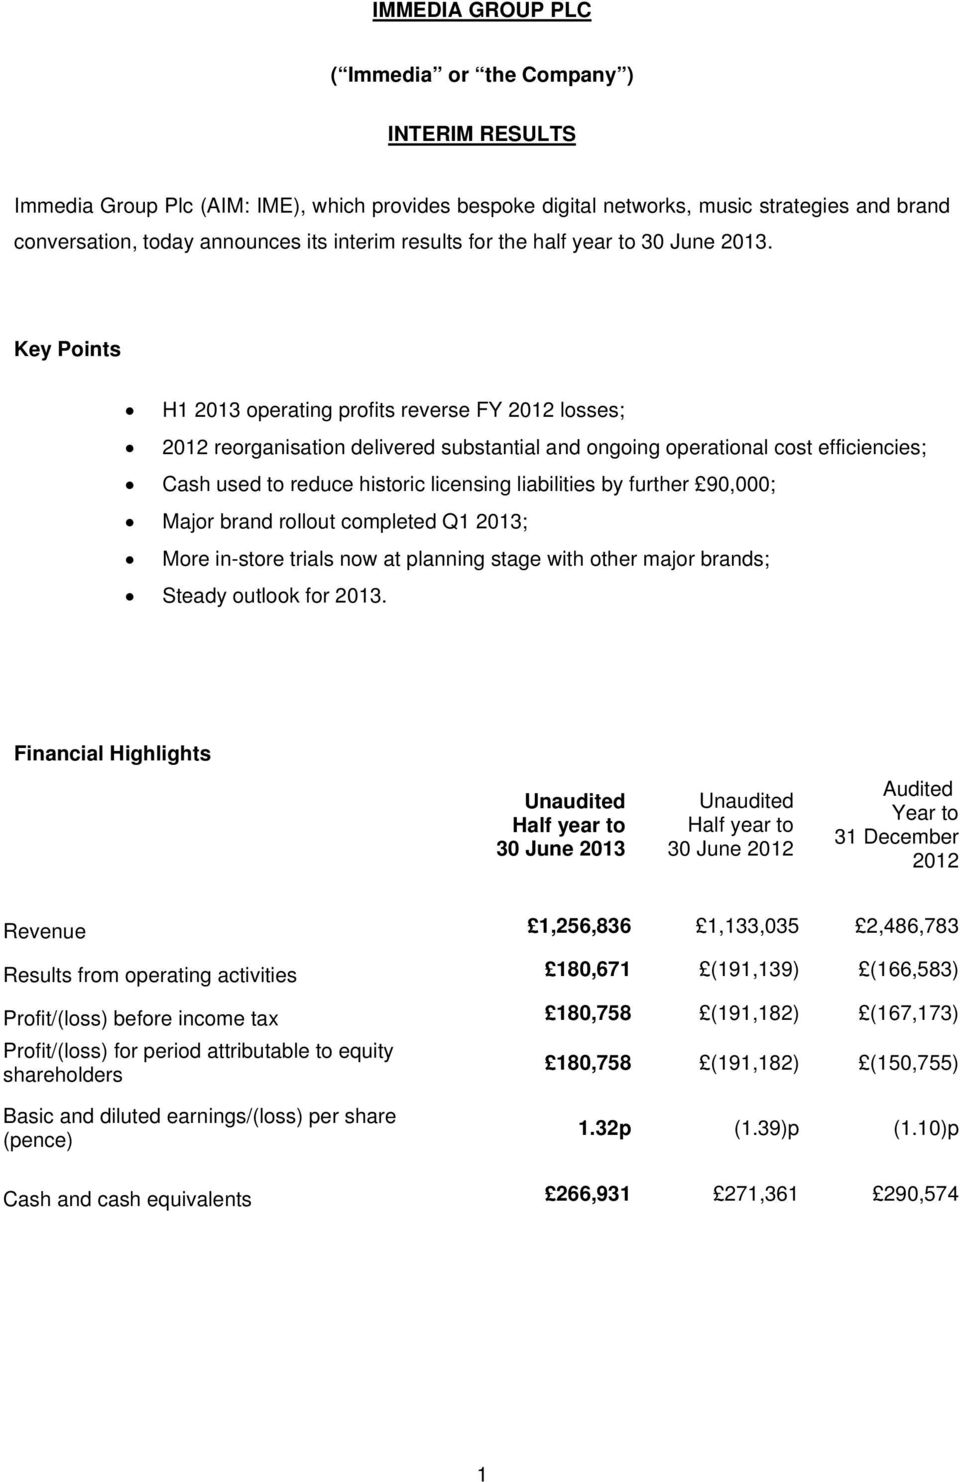 Key Points H1 2013 operating profits reverse FY 2012 losses; 2012 reorganisation delivered substantial and ongoing operational cost efficiencies; Cash used to reduce historic licensing liabilities by